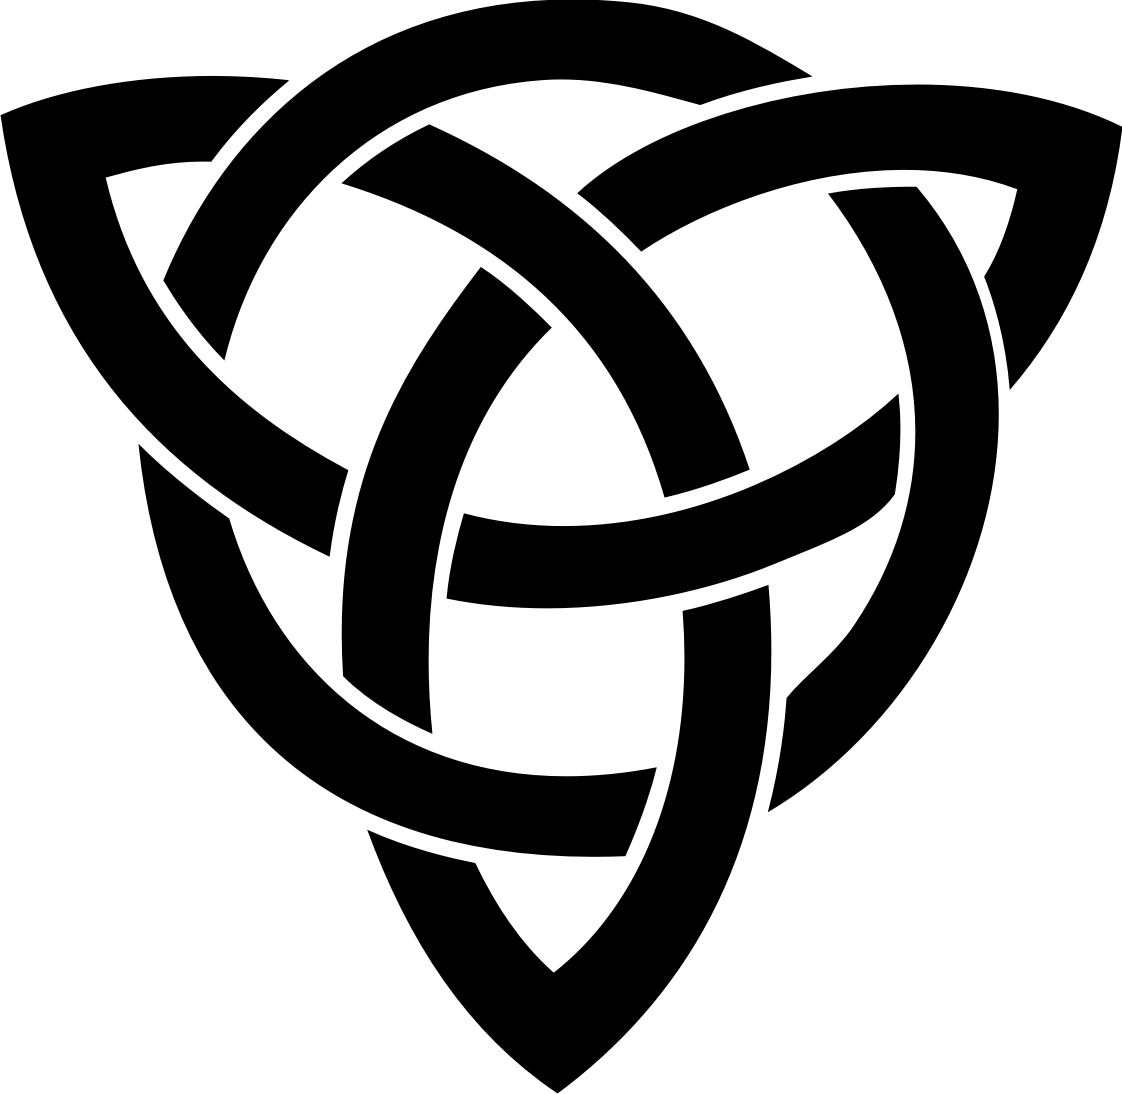 12182010g 11221094 krperkunst pinterest the celtic trinity knot is a very simple but powerful symbol and very suitable for a tattoo it is a triangle knot the 3 corners have various meanings buycottarizona Image collections